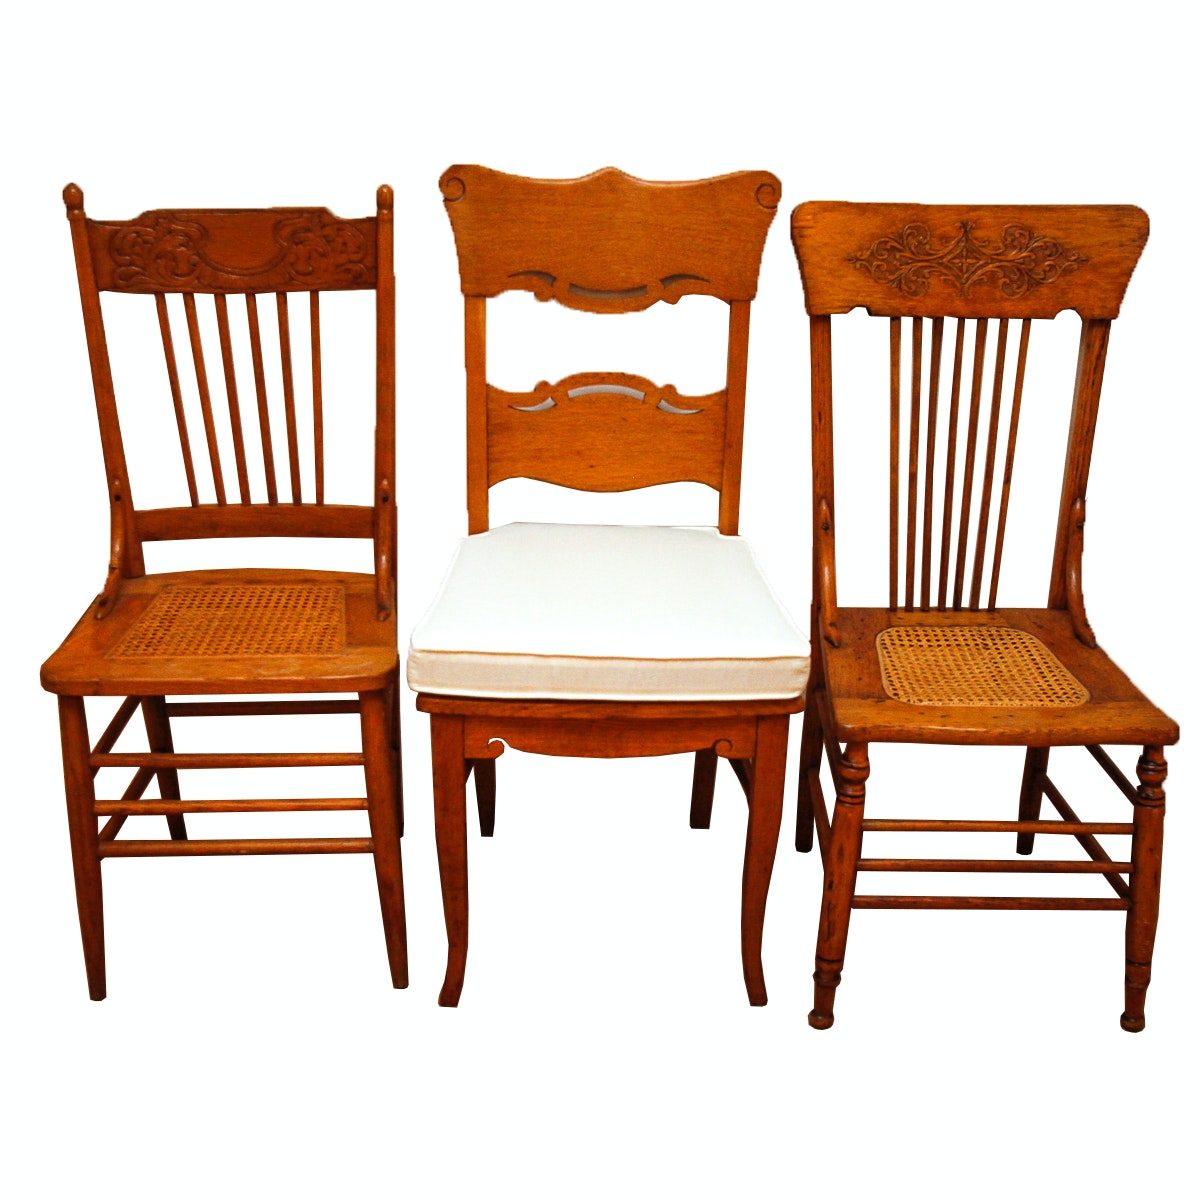 Assortment of Oak and Cane Dining Chairs